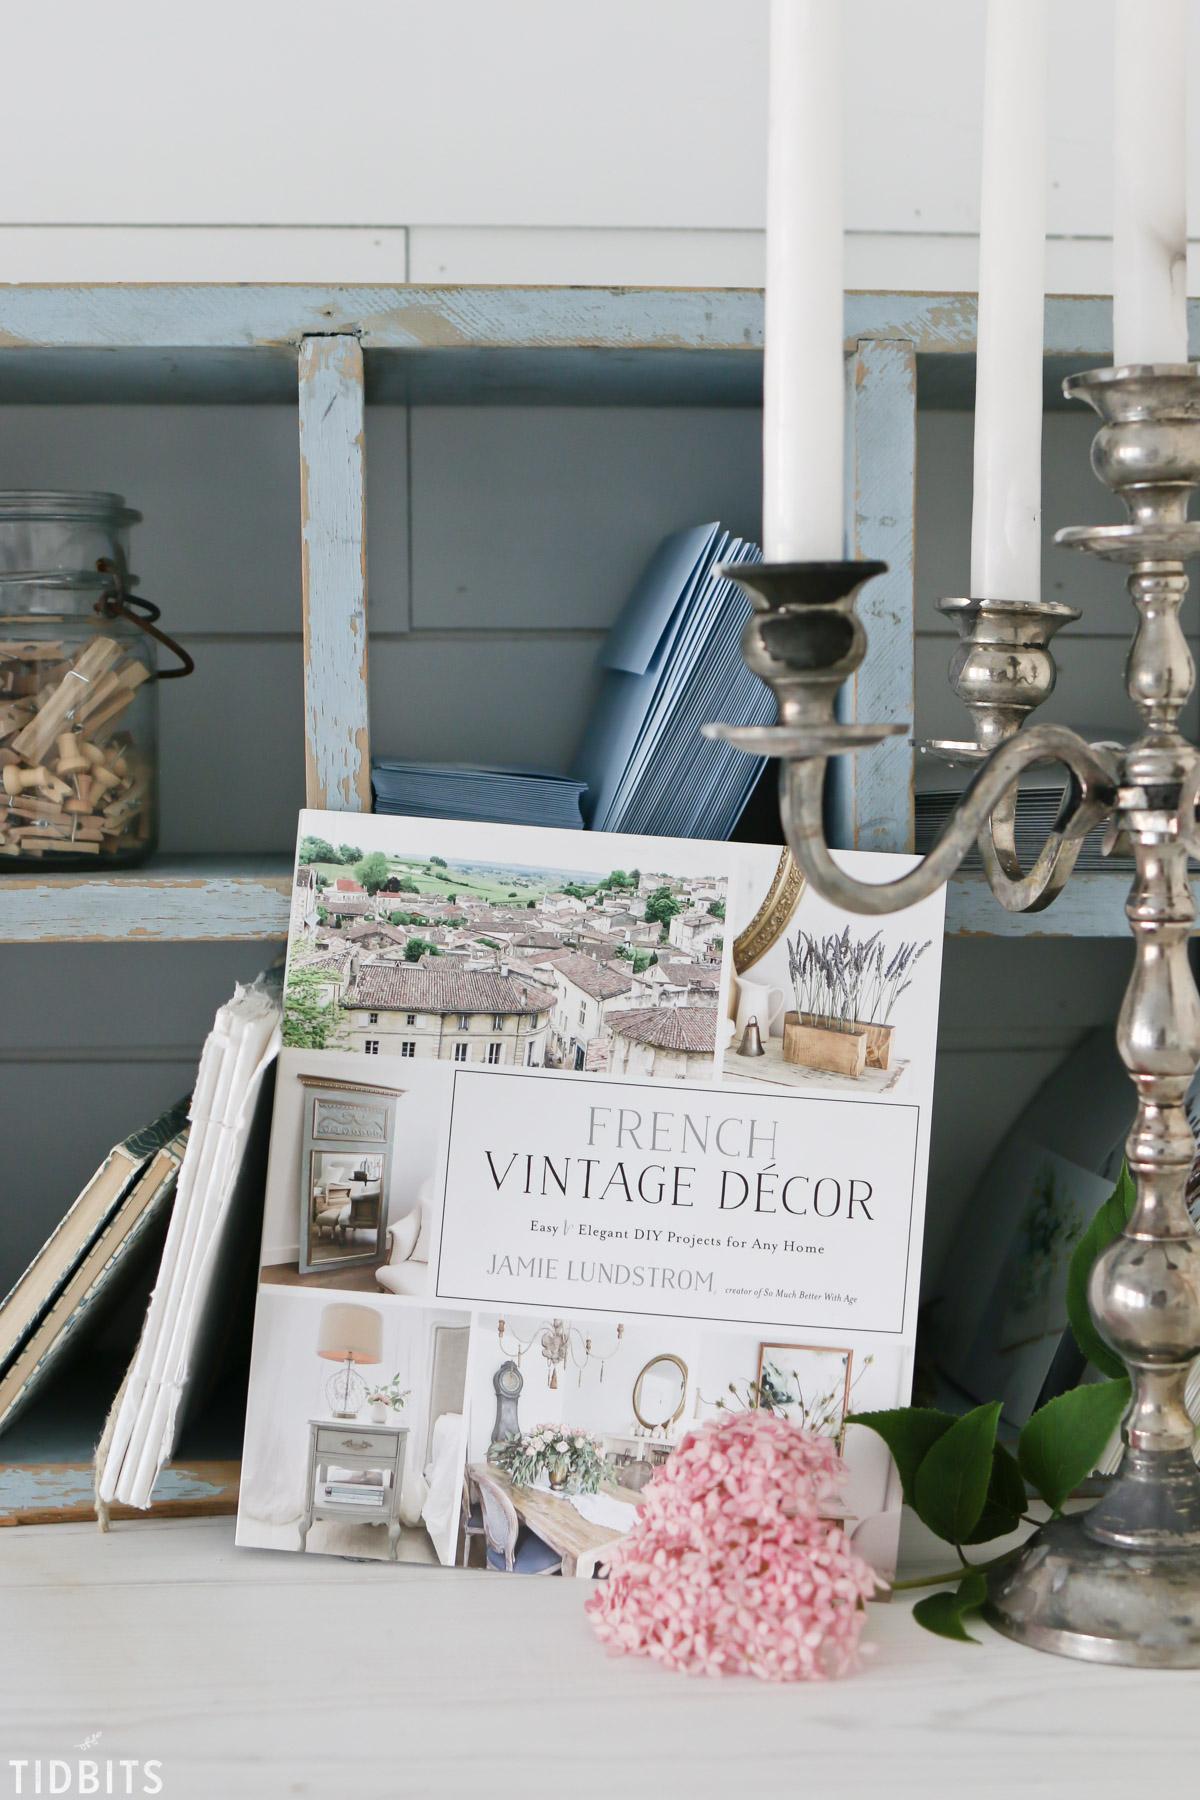 French Vintage Decor book review